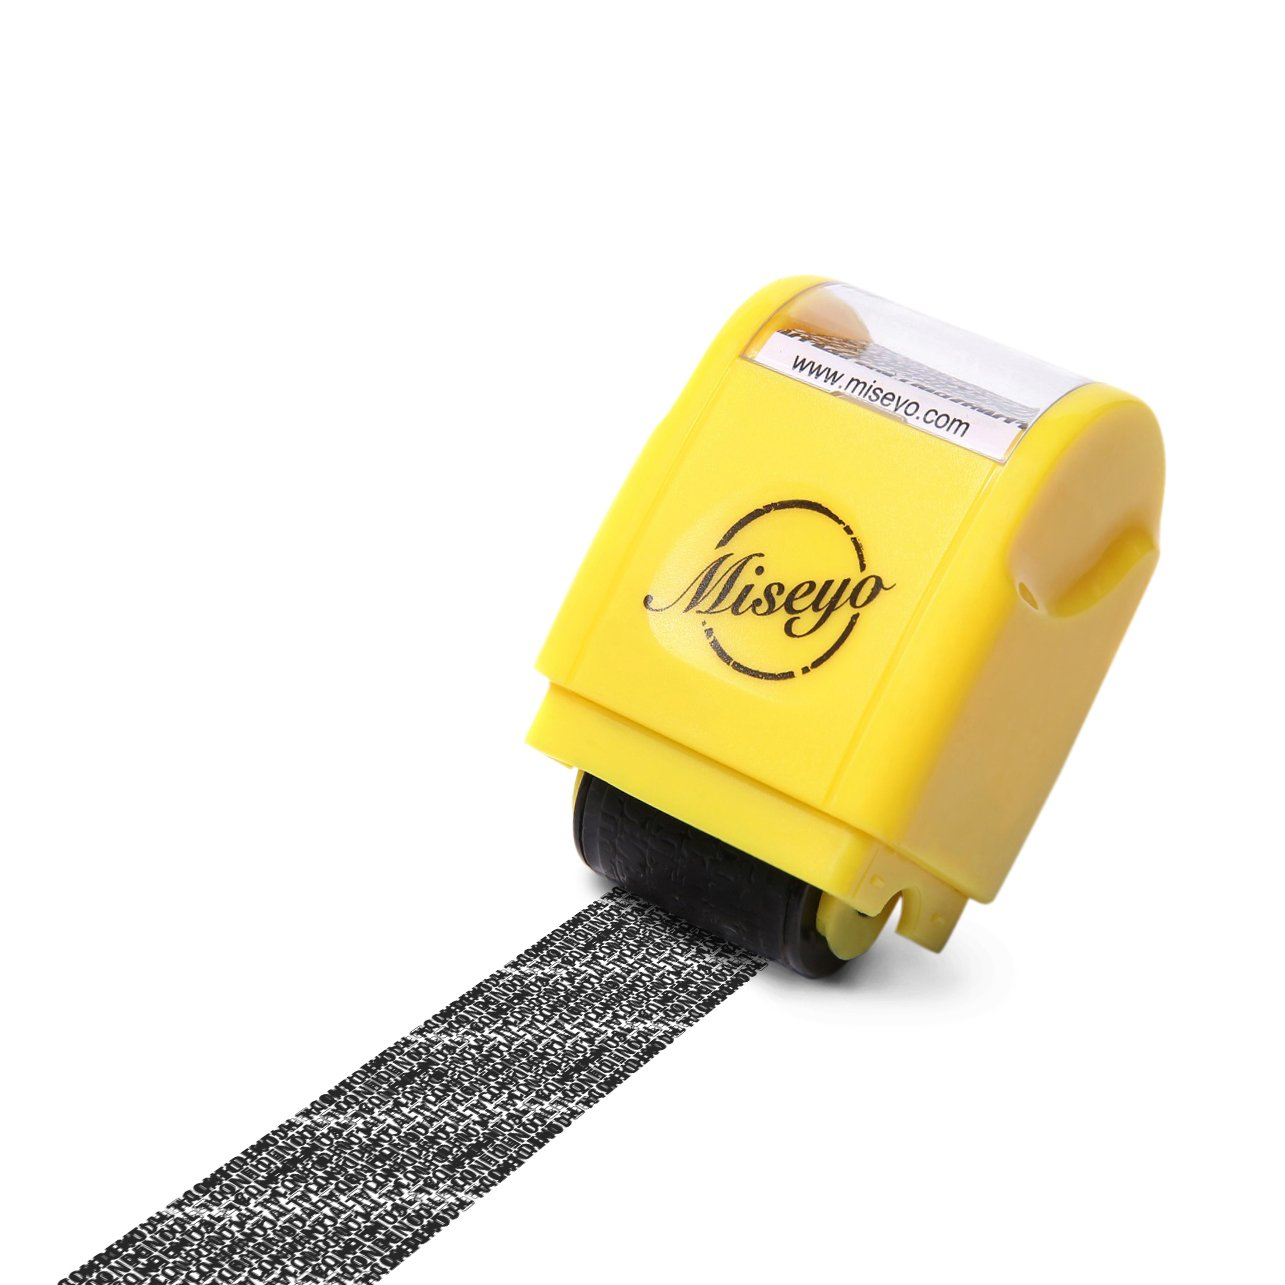 Miseyo Mini Identity Theft Protection Roller Stamp - Yellow